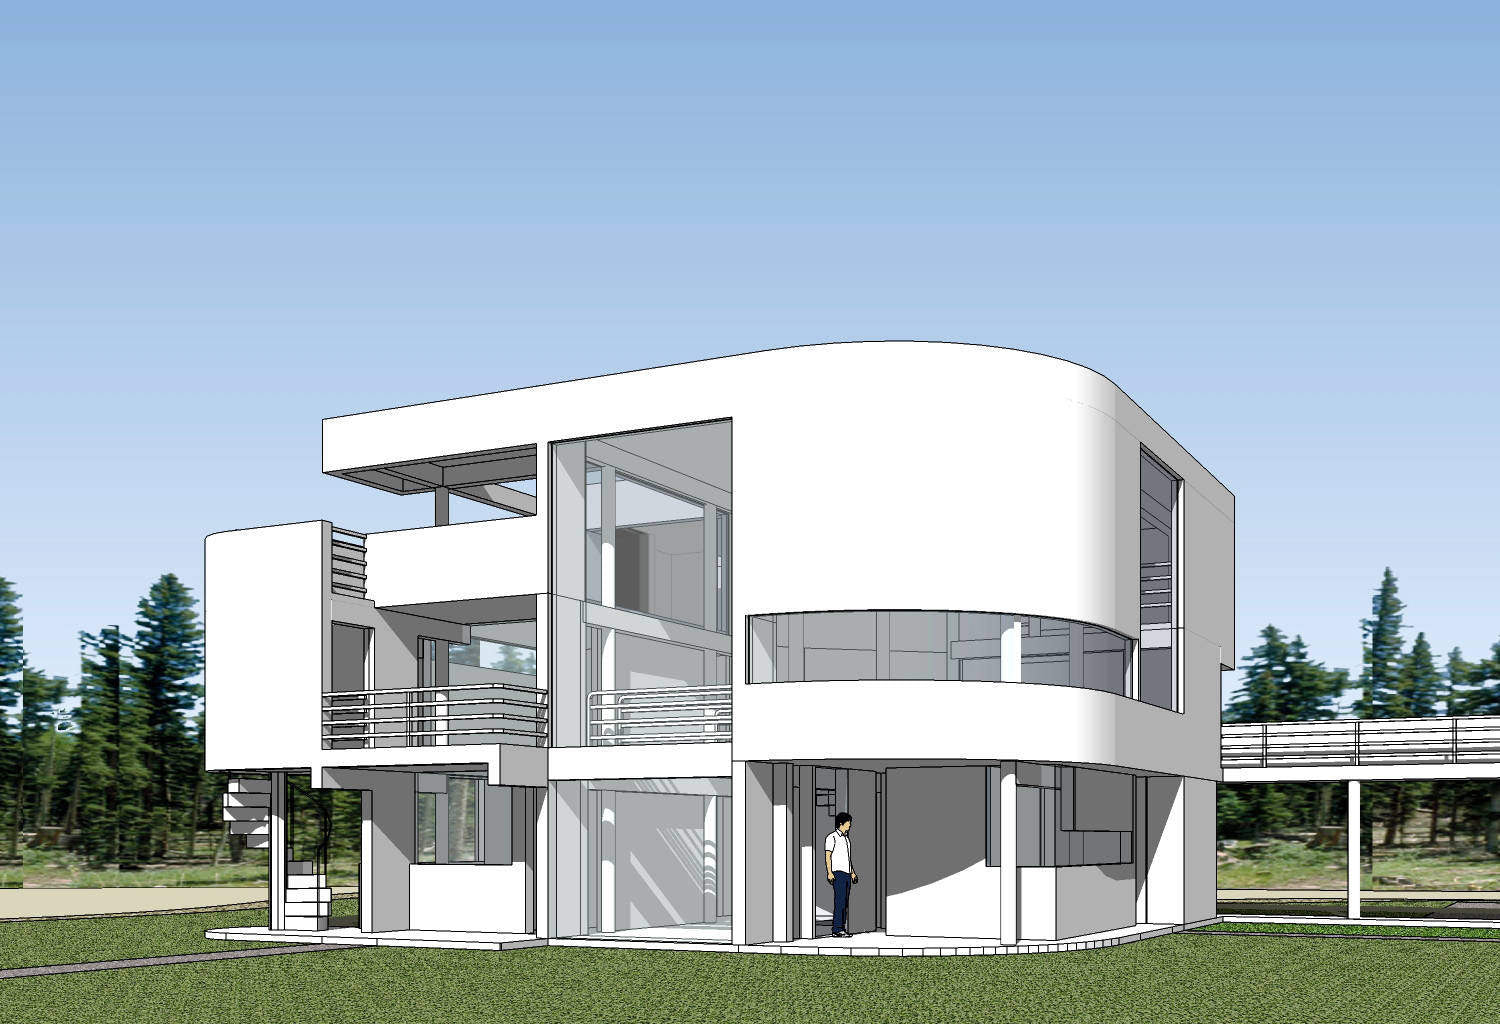 Sketchup 3d architecture models saltzman house richard for House cad